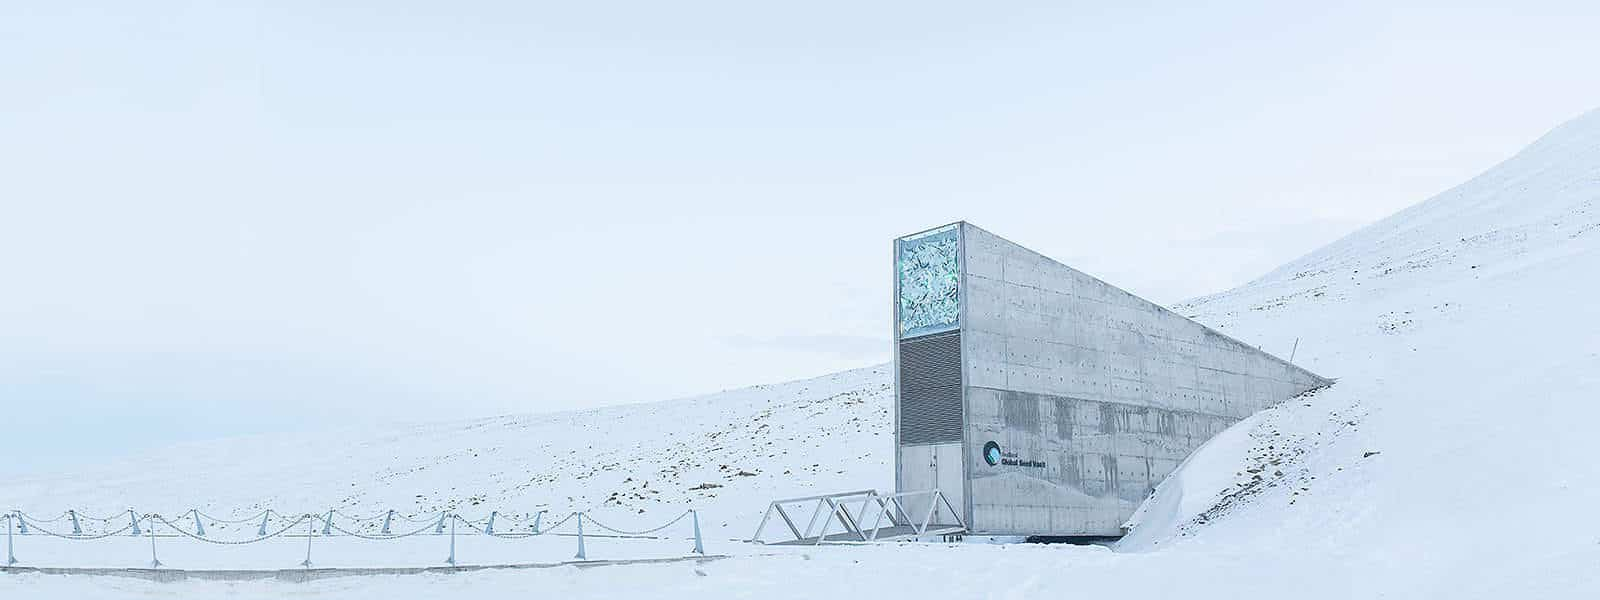 seed-vault-location-slide-2